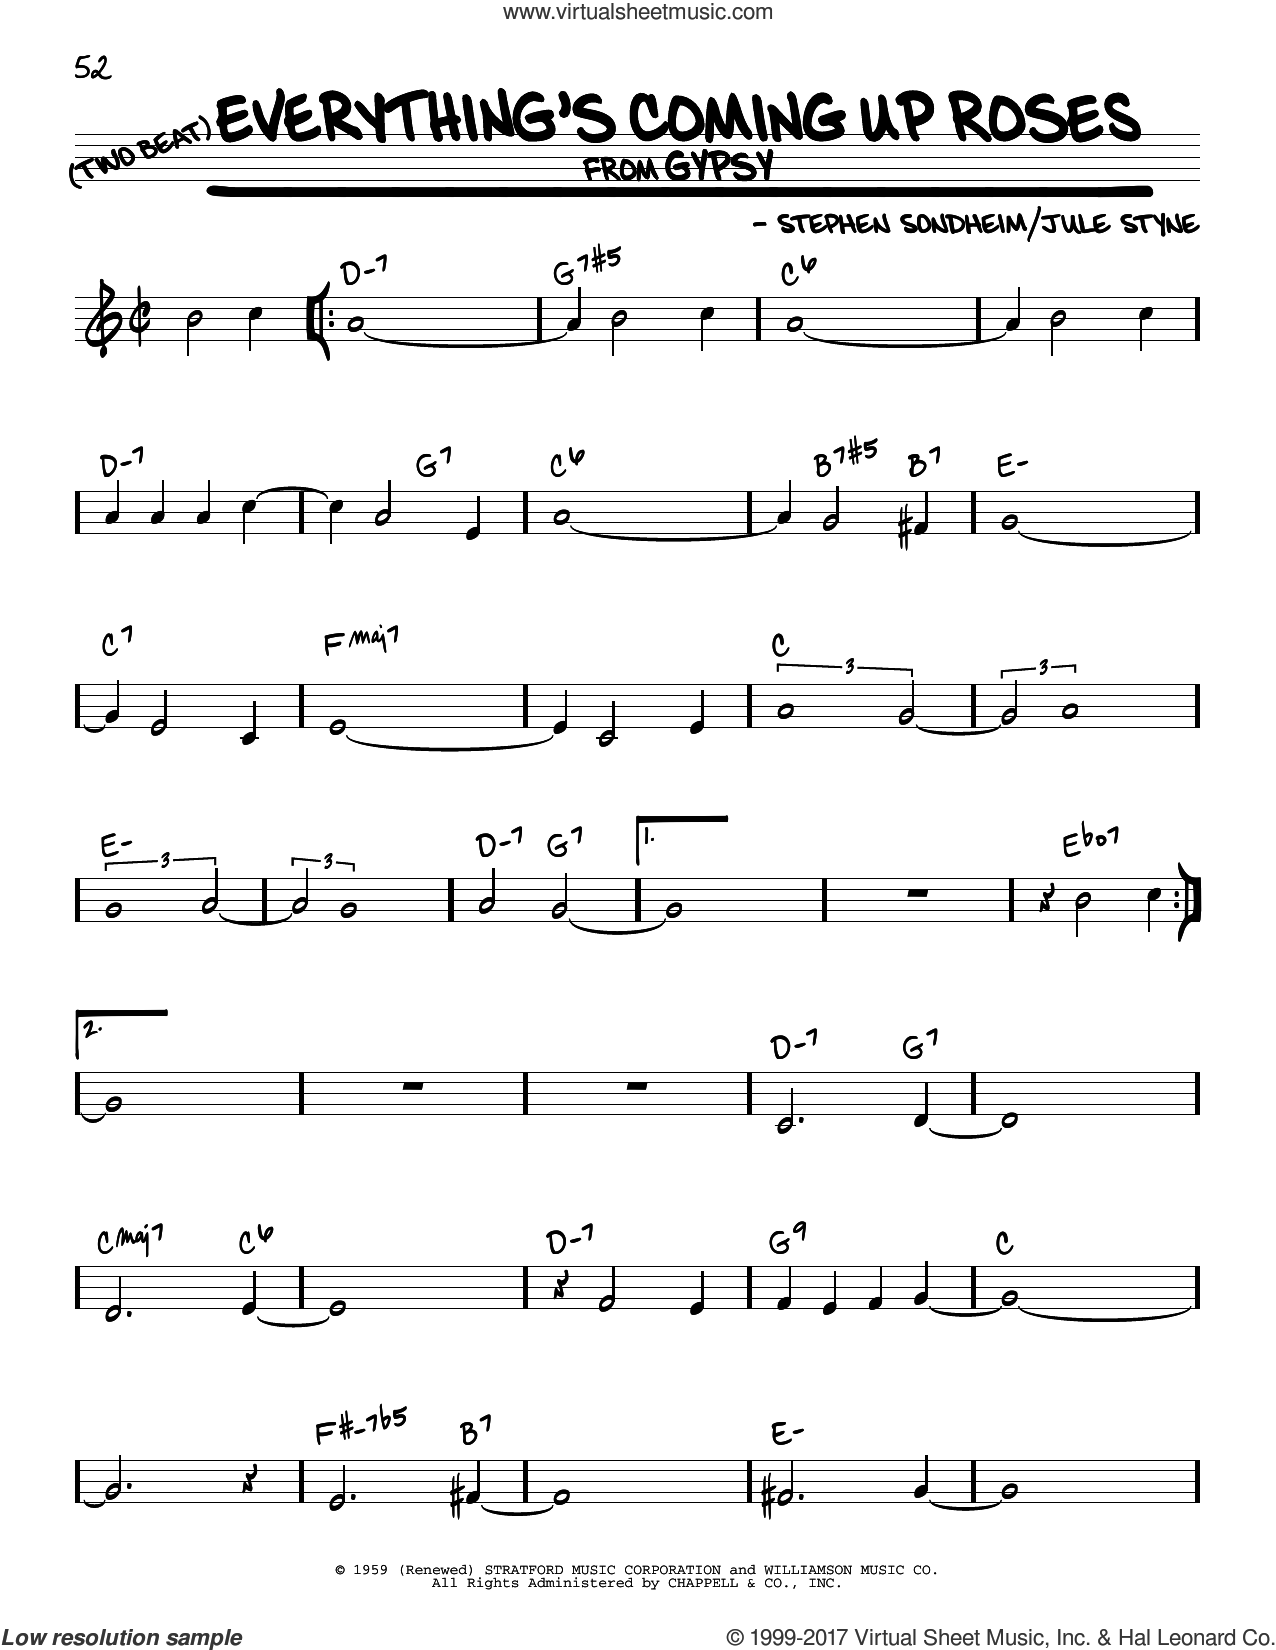 Everything's Coming Up Roses sheet music for voice and other instruments (real book) by Stephen Sondheim and Jule Styne, intermediate skill level